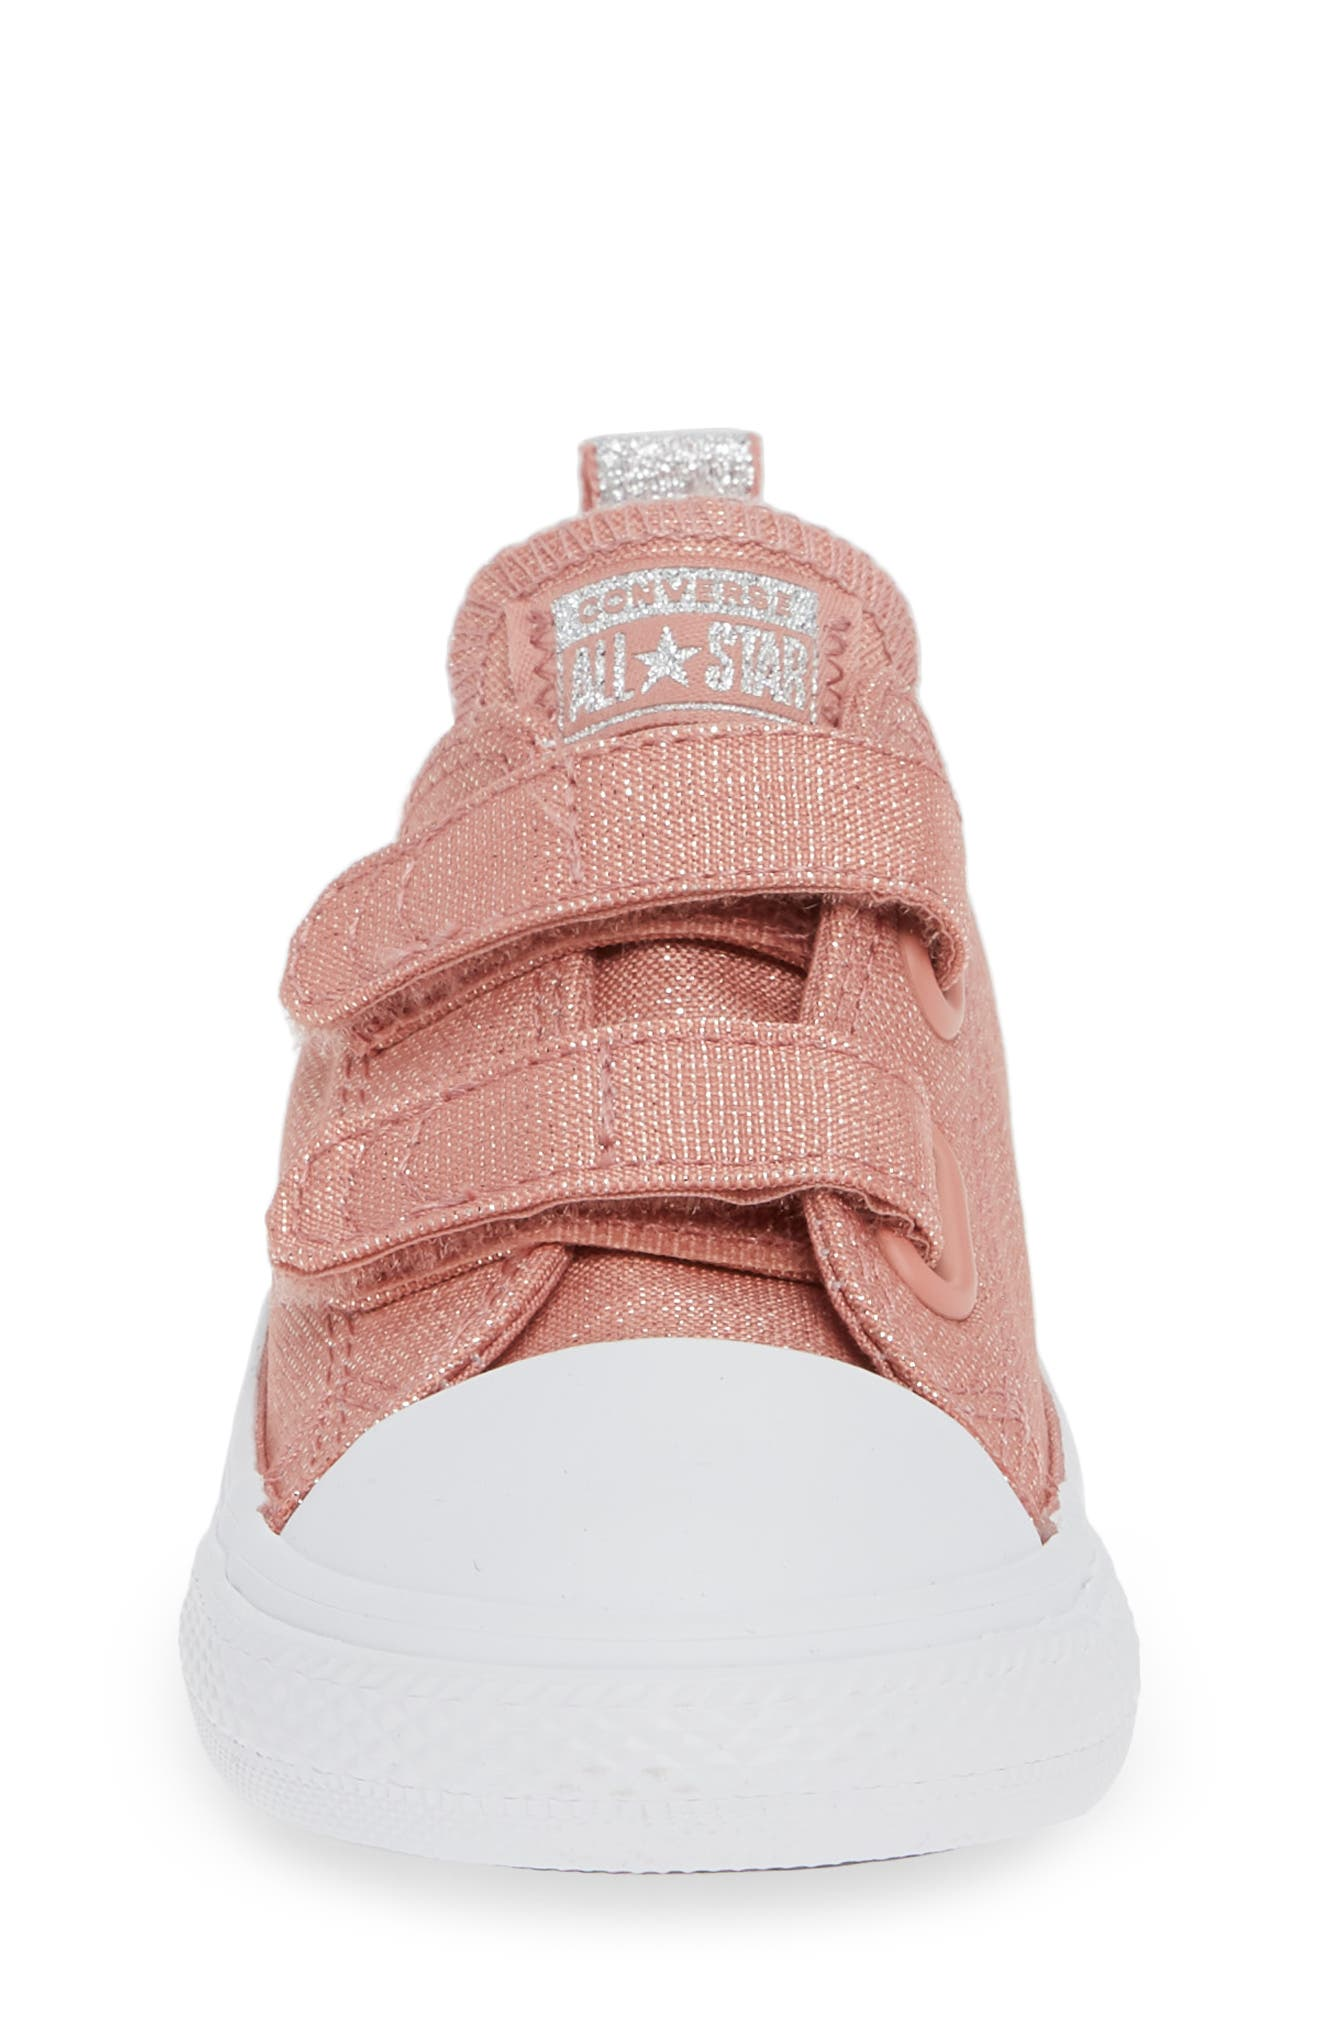 All Star<sup>®</sup> Fairy Dust Sneaker,                             Alternate thumbnail 4, color,                             RUST PINK